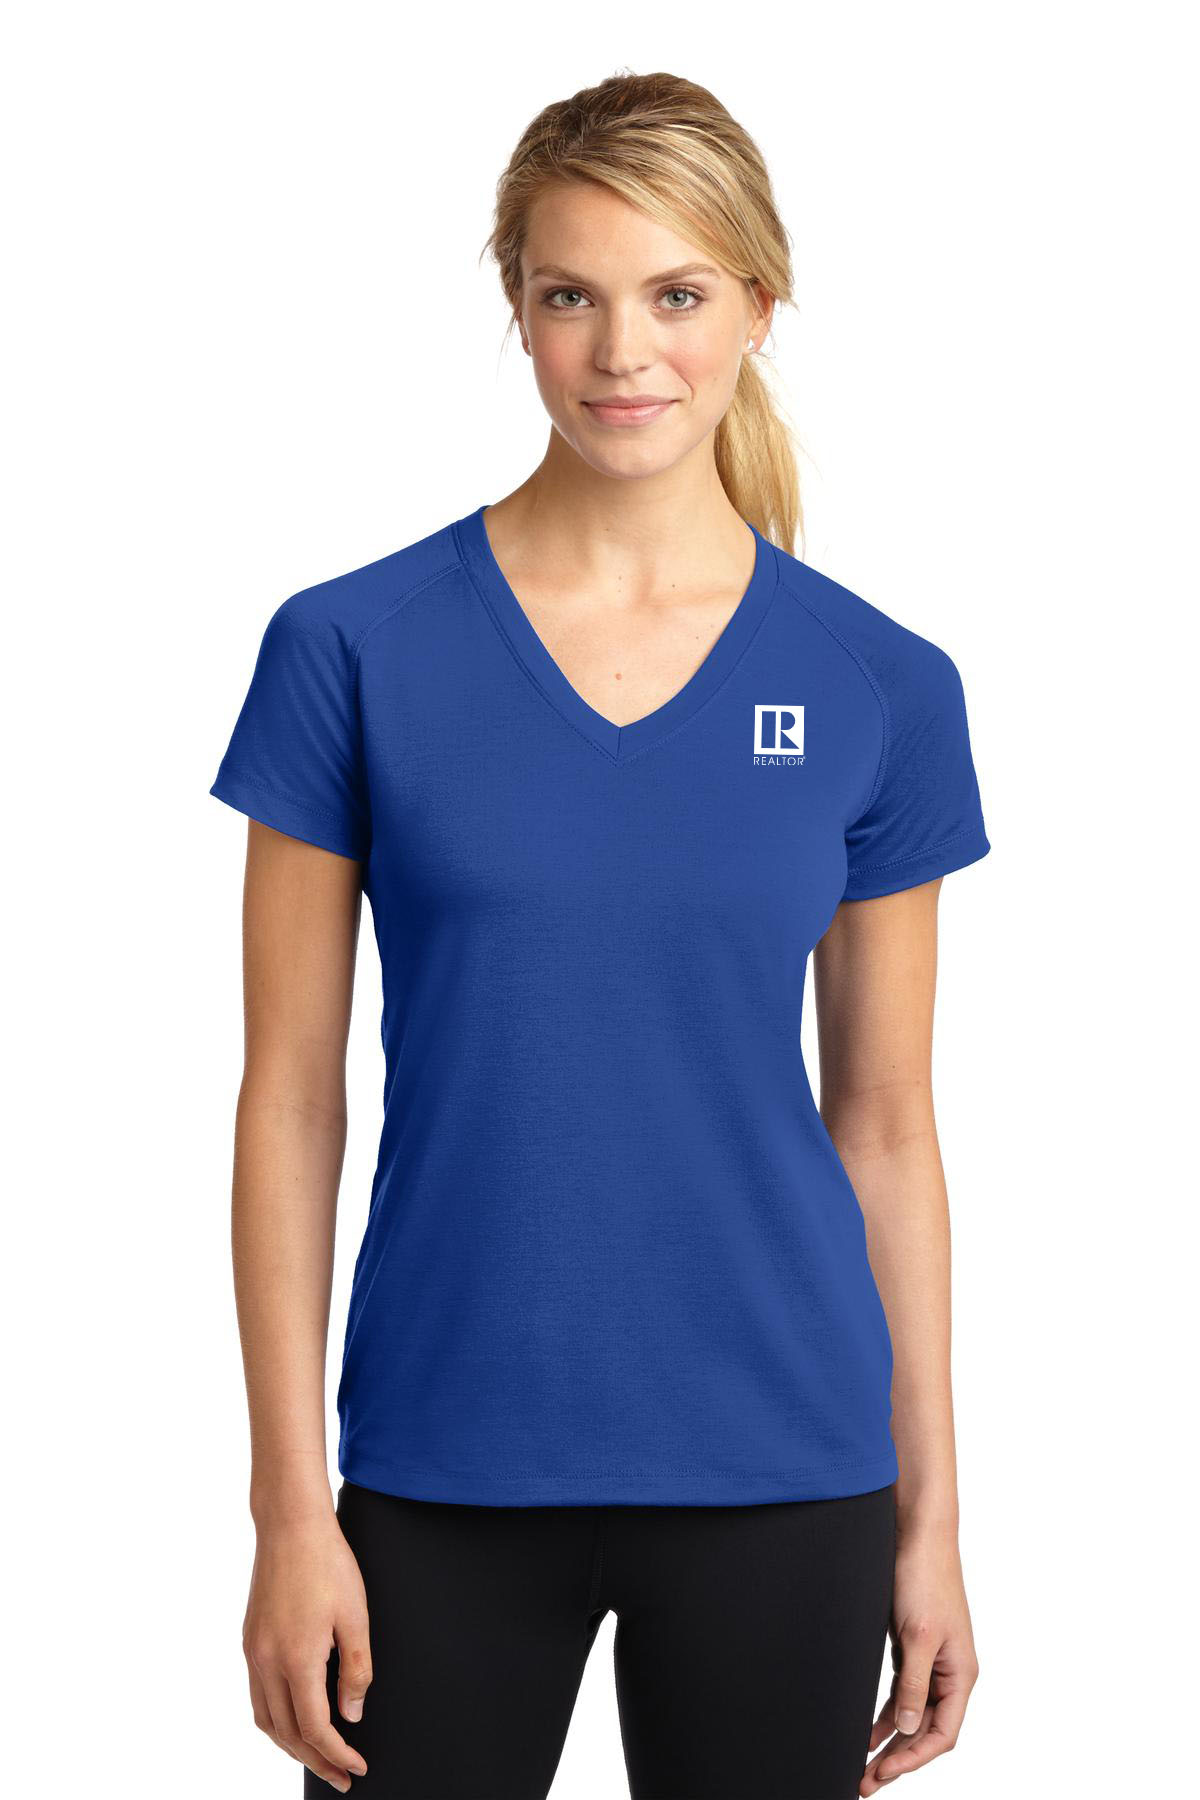 Ladies Performance V-Neck ladies, performances, v-necks